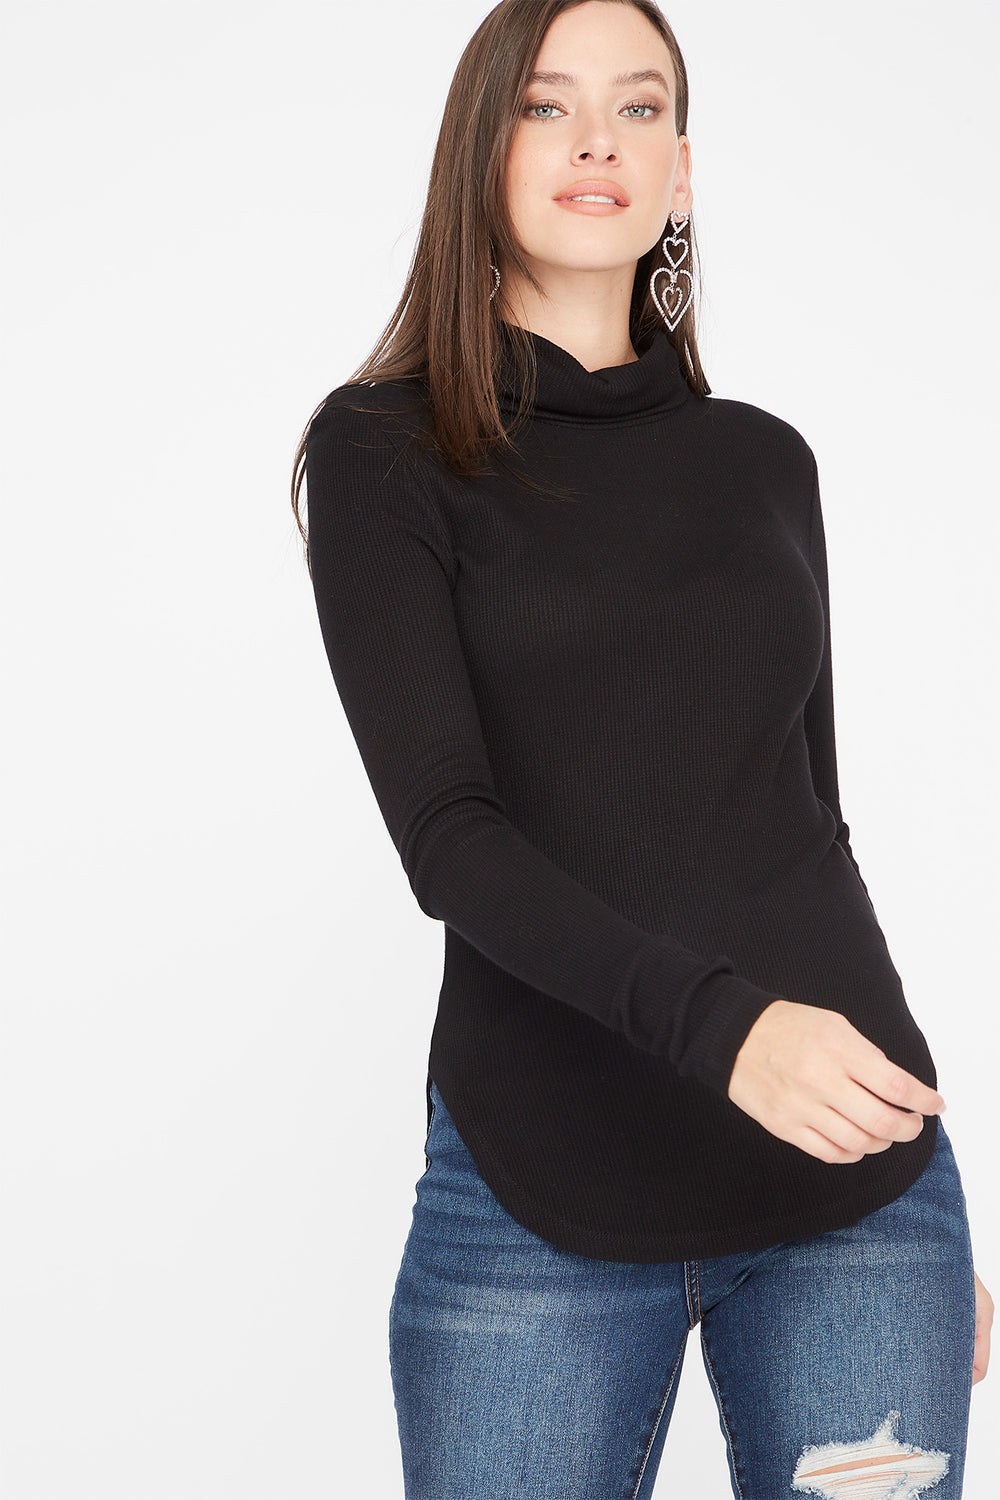 Thermal Turtleneck Long Sleeve Tunic Top Black